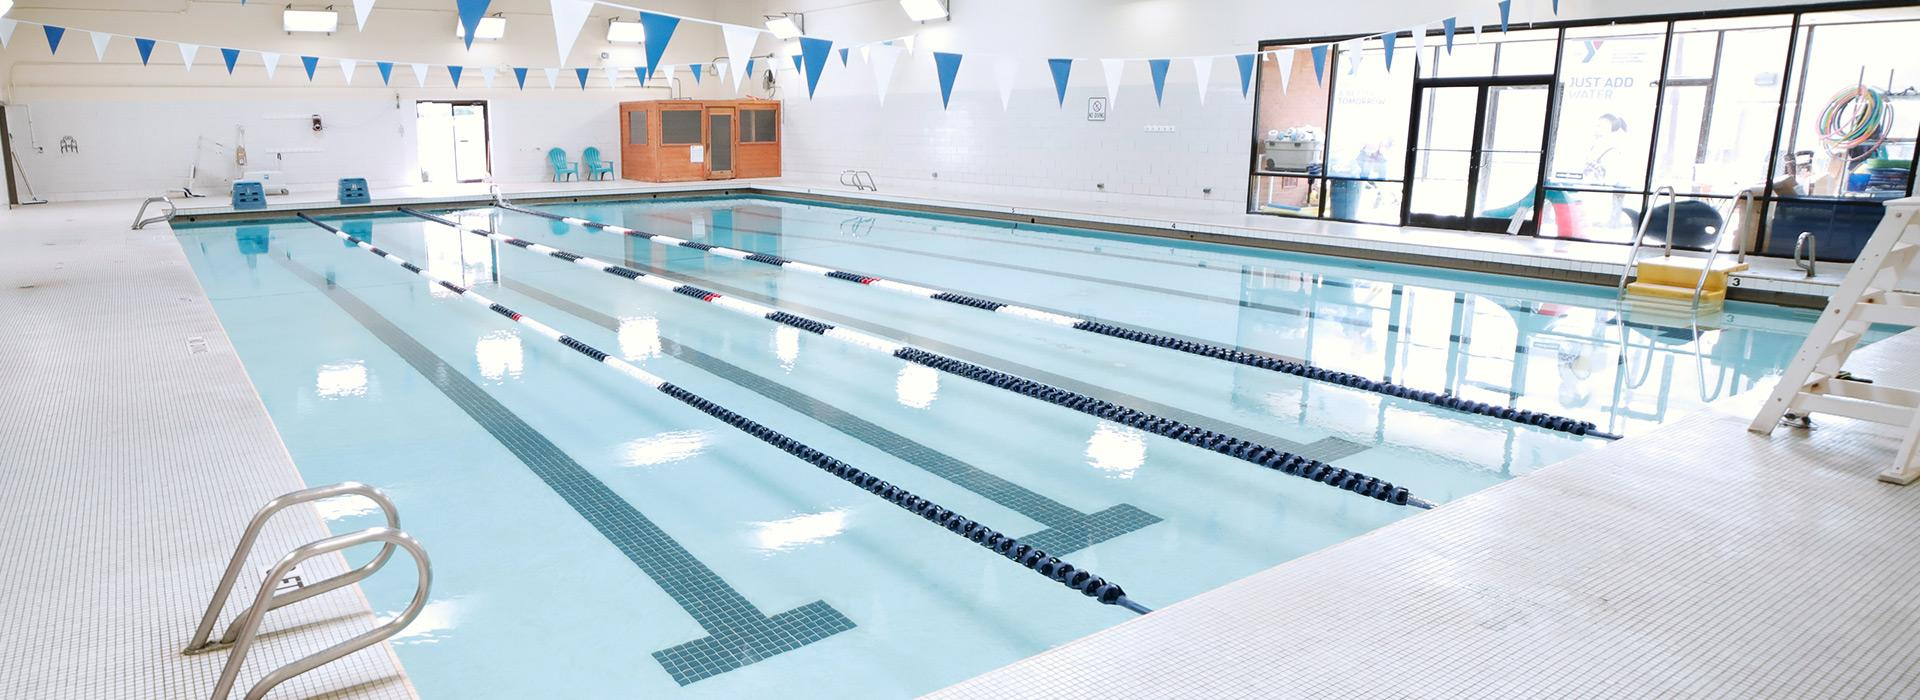 25-meter indoor lap swimming pool at the Mt. Trashmore Family YMCA